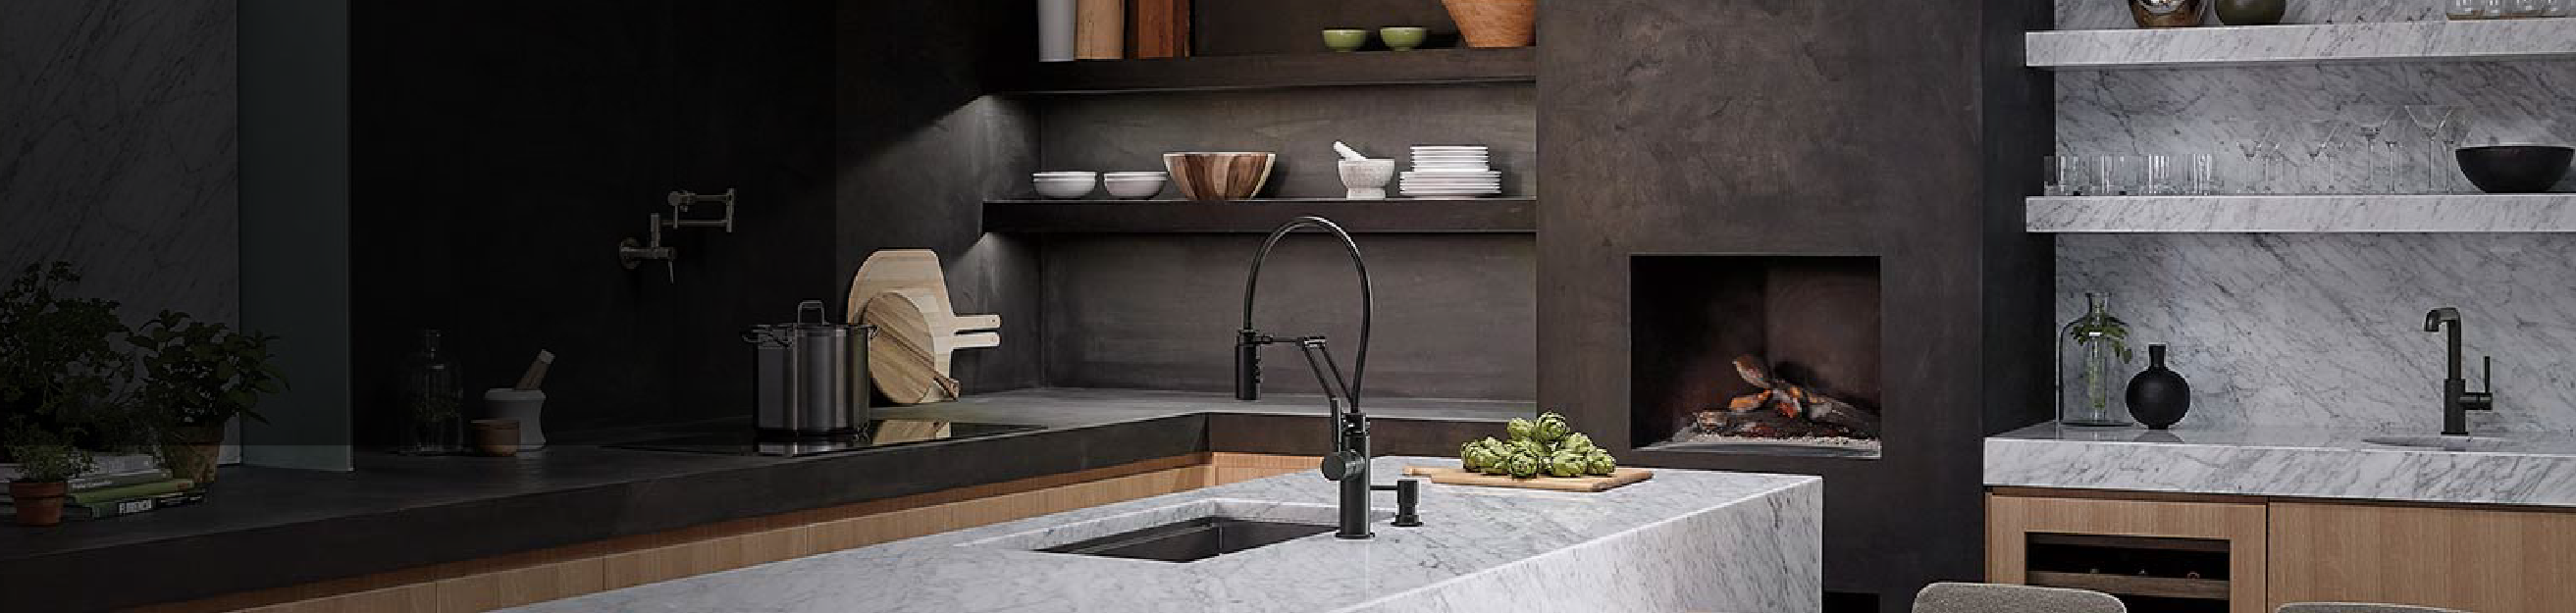 Sophisticated Designs for the Kitchen at Plumbtile.com